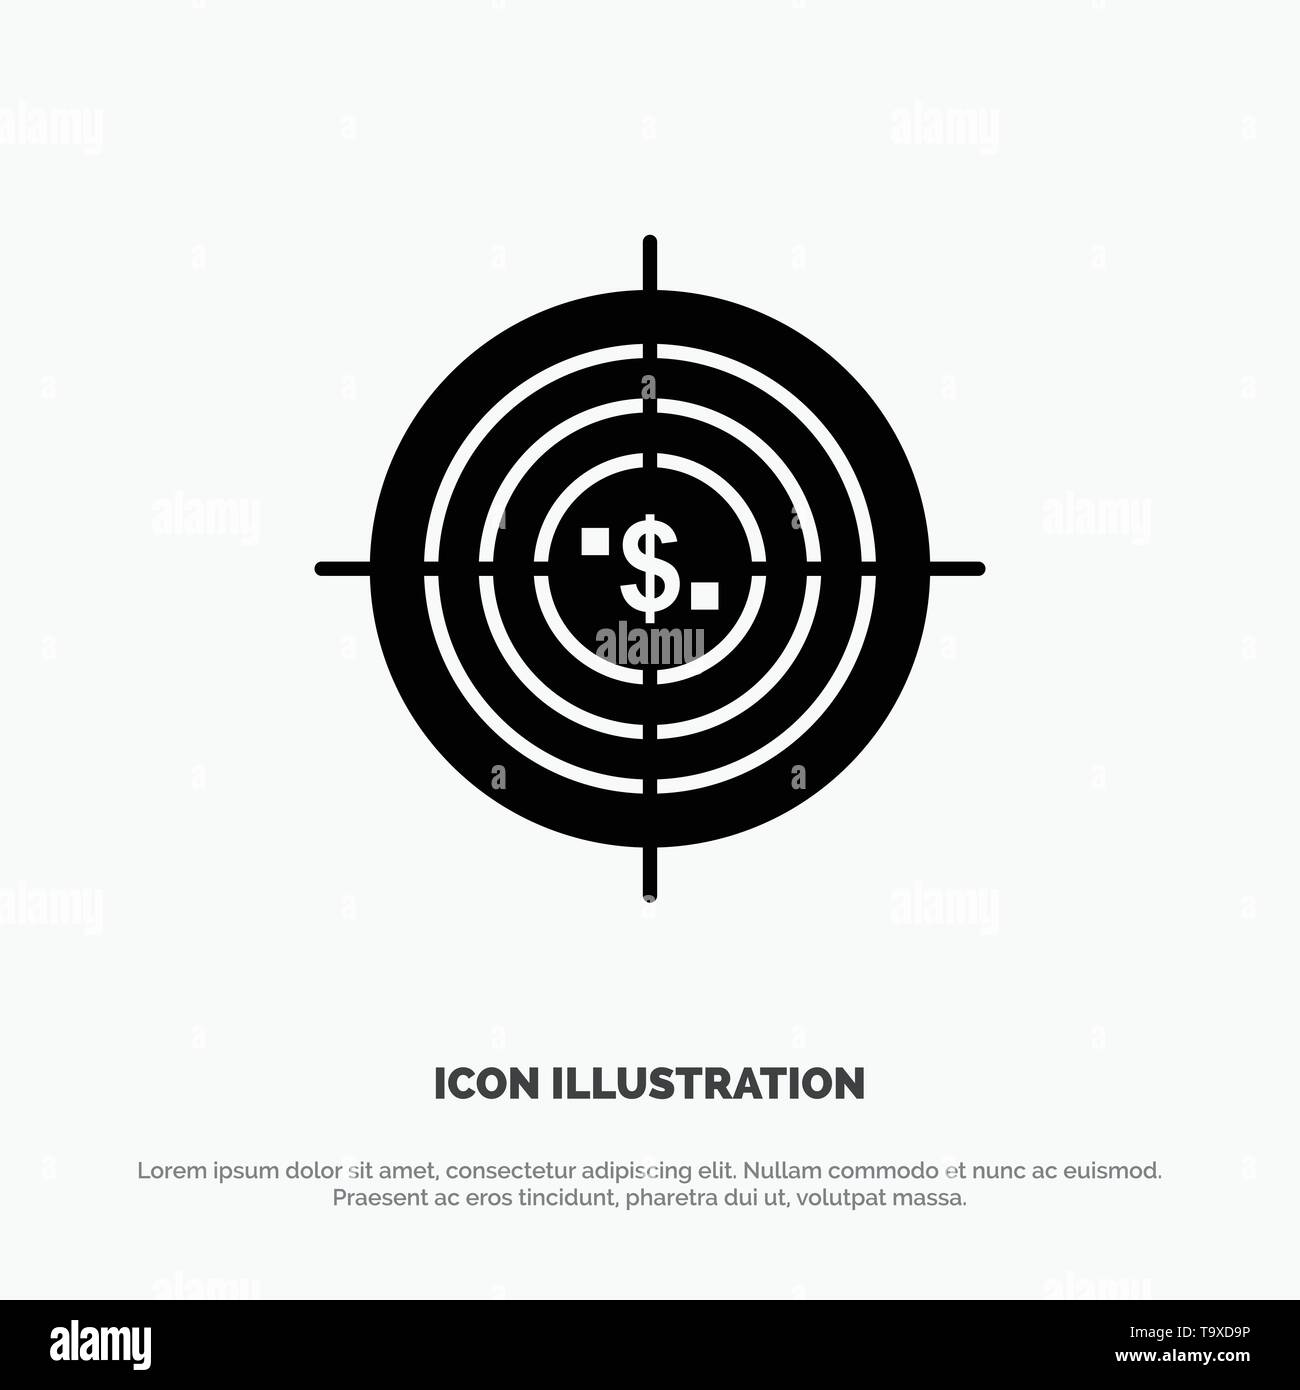 Target, Aim, Business, Cash, Financial, Funds, Hunting, Money solid Glyph Icon vector - Stock Image